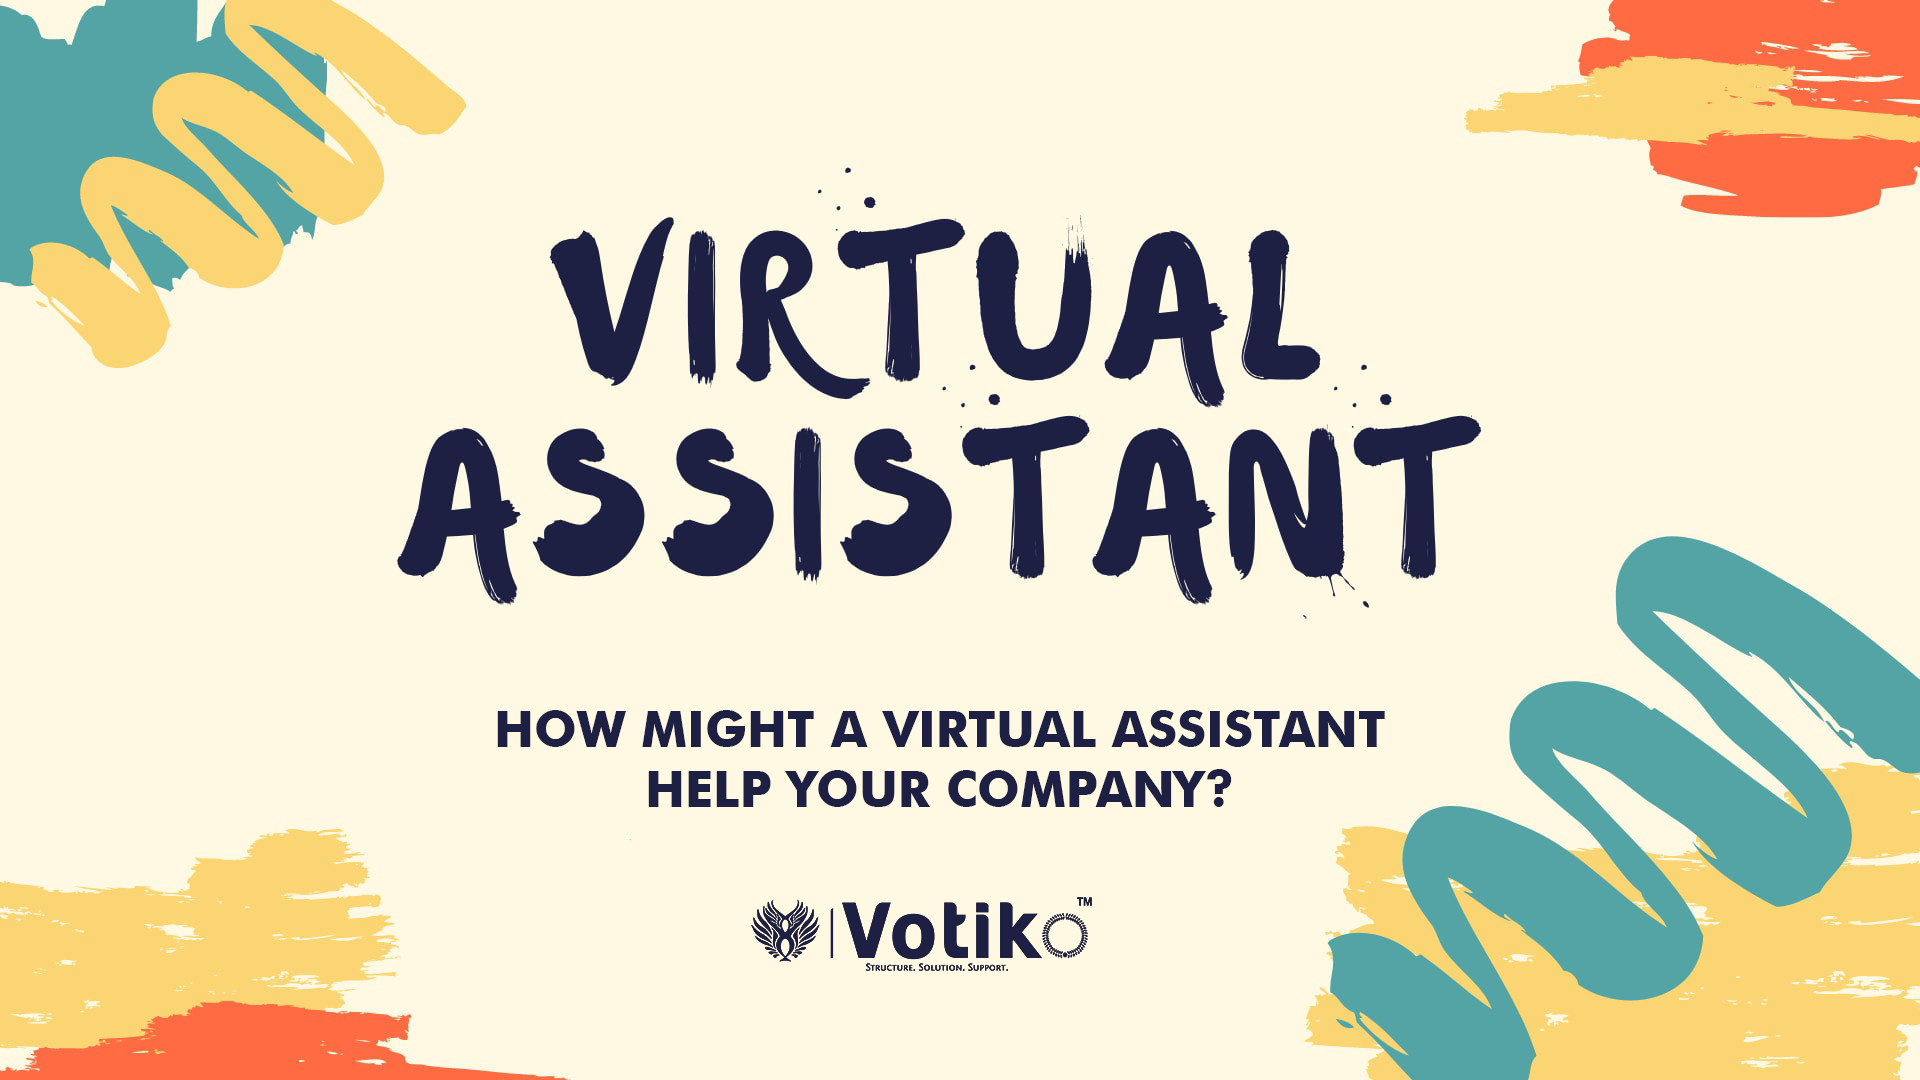 How might a virtual assistant help your company?